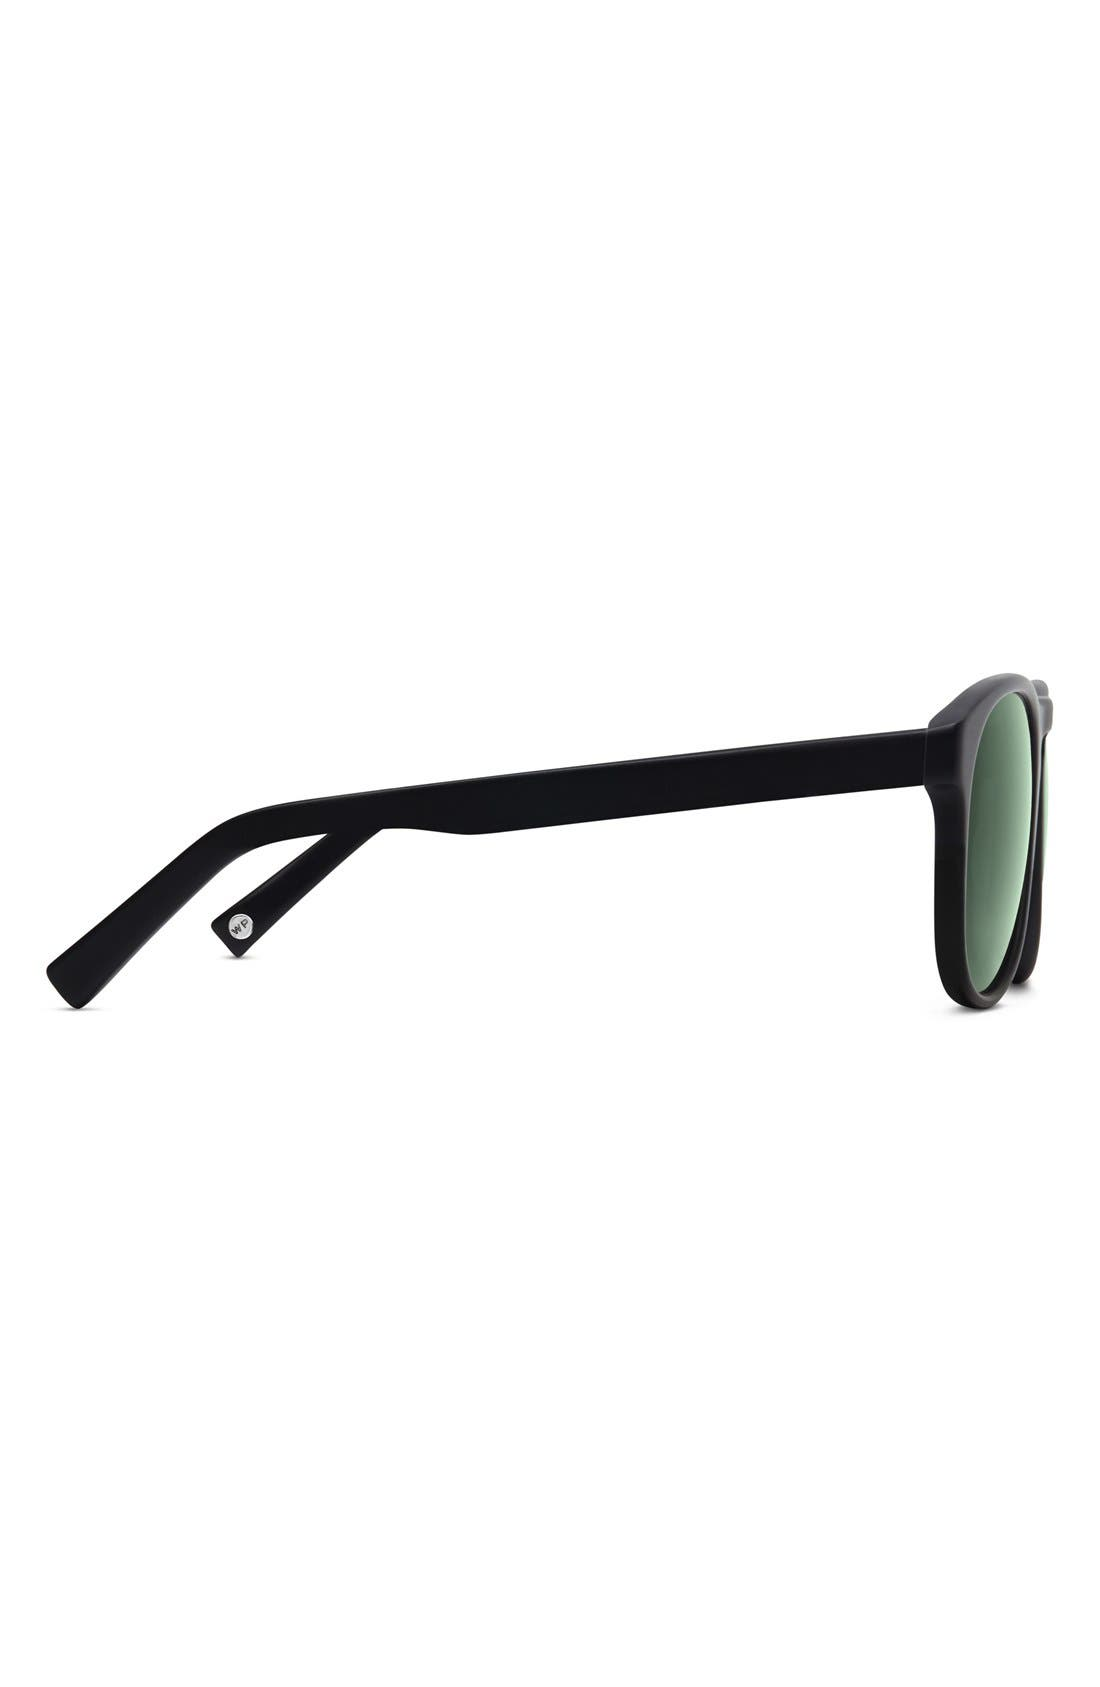 WARBY PARKER,                             'Griffin' 53mm Polarized Sunglasses,                             Alternate thumbnail 3, color,                             001